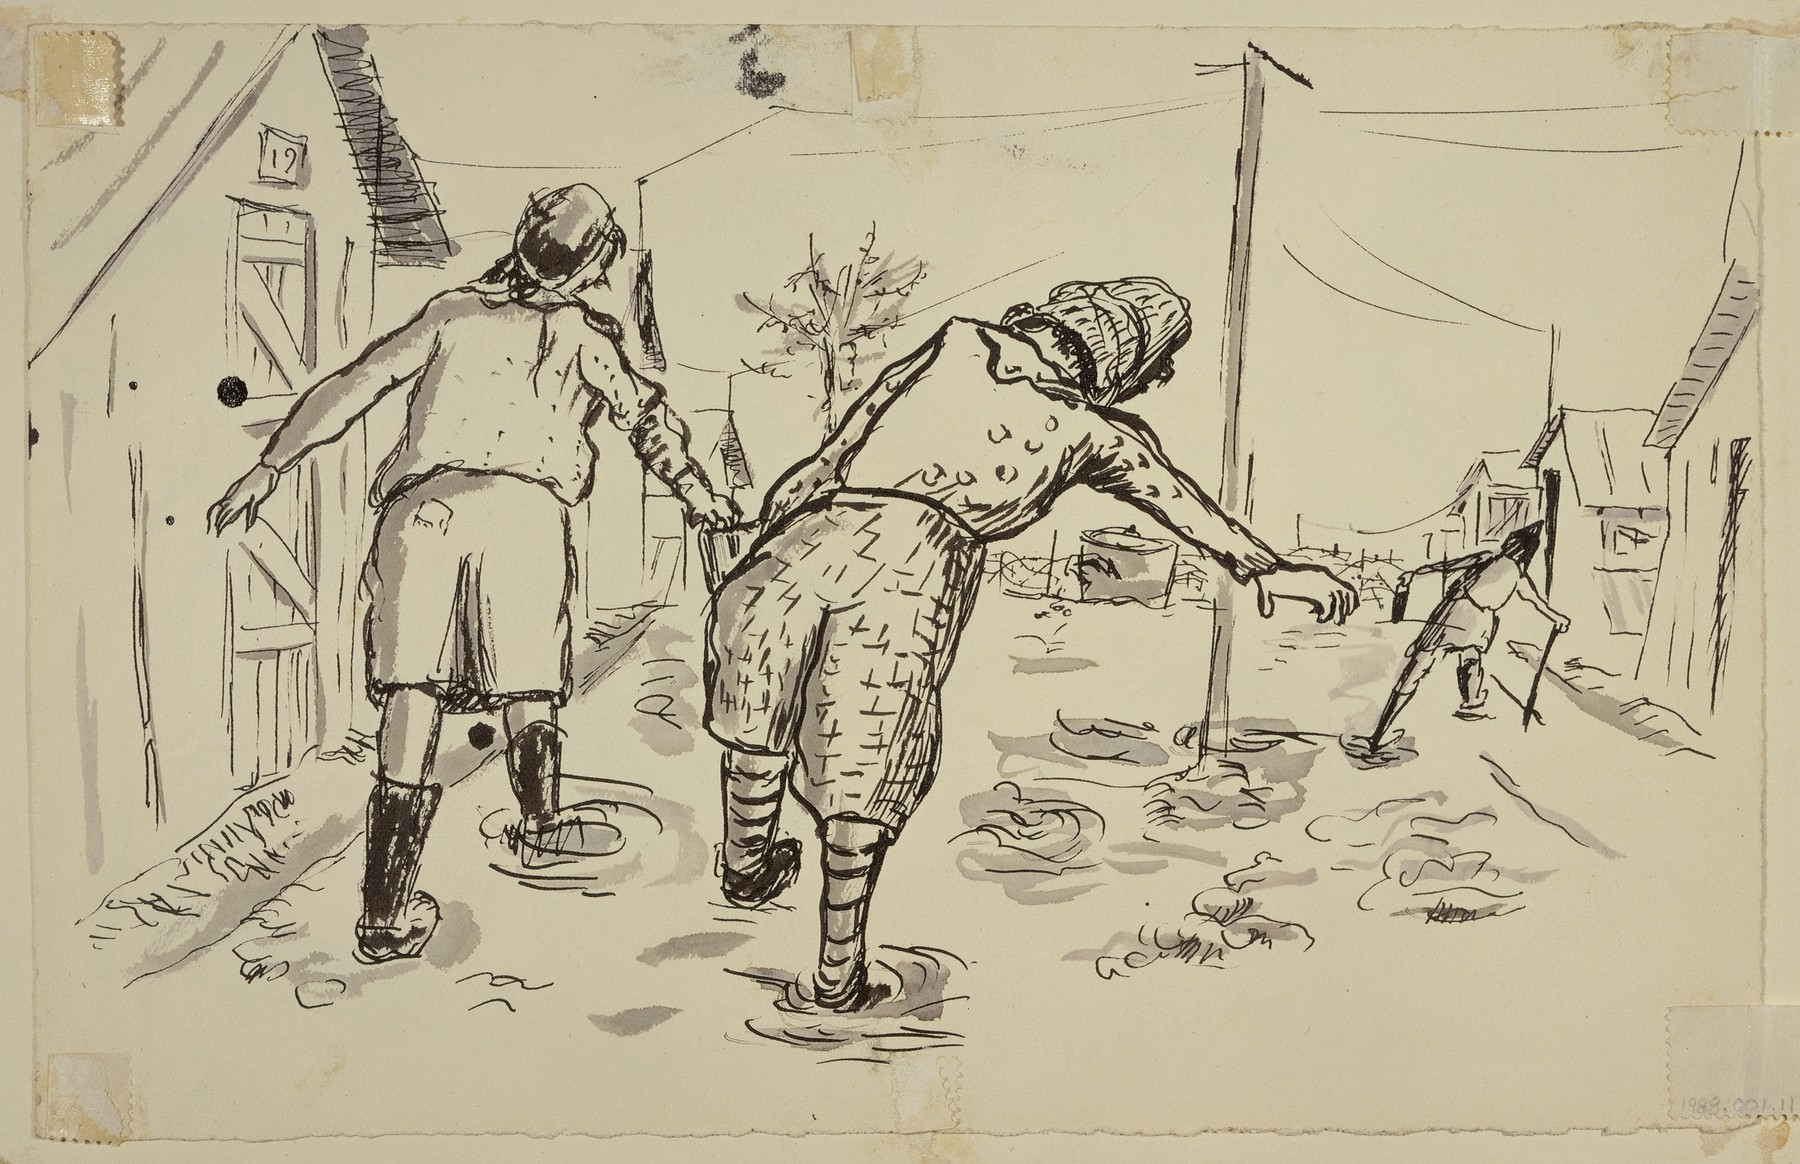 """The Escape to Liberty"" by Lili Andrieux.  Sketch of two figures walking down the street, and third figure In the distance, walking with cane."